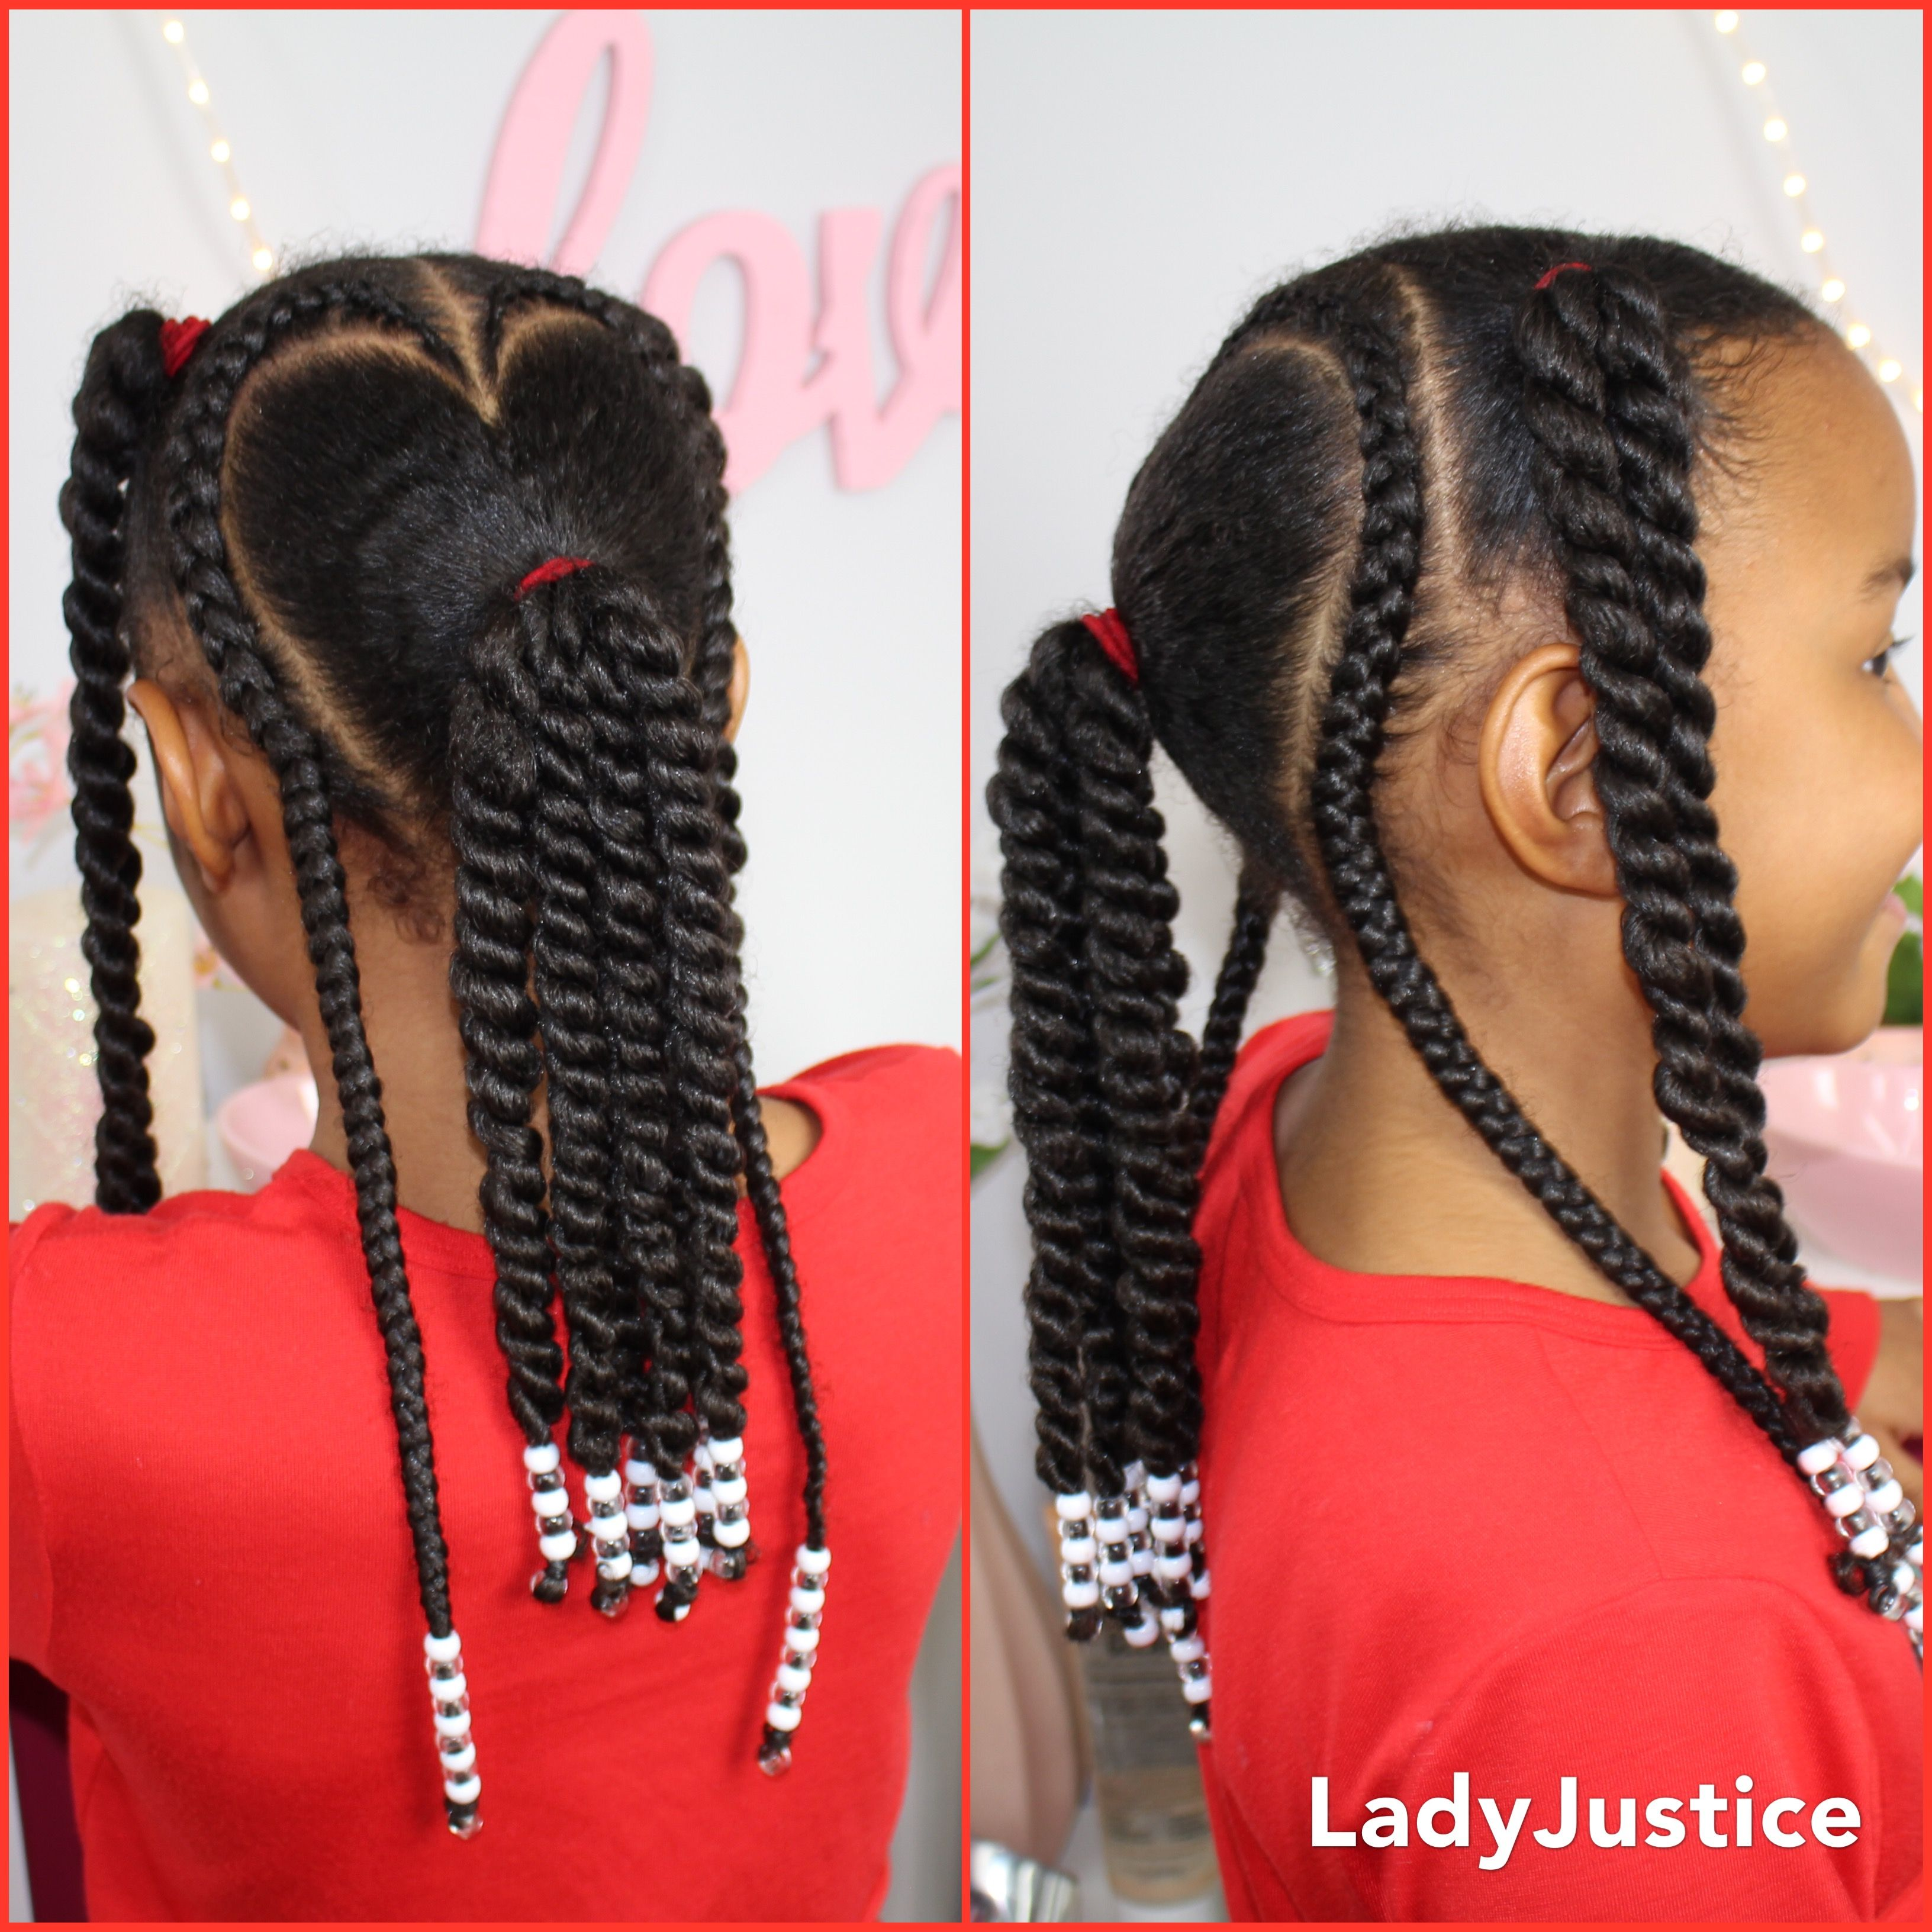 Hearts Beads Braids And Ponytails For Valentine S Day Kids Curls Hair Styles Kids Hairstyles